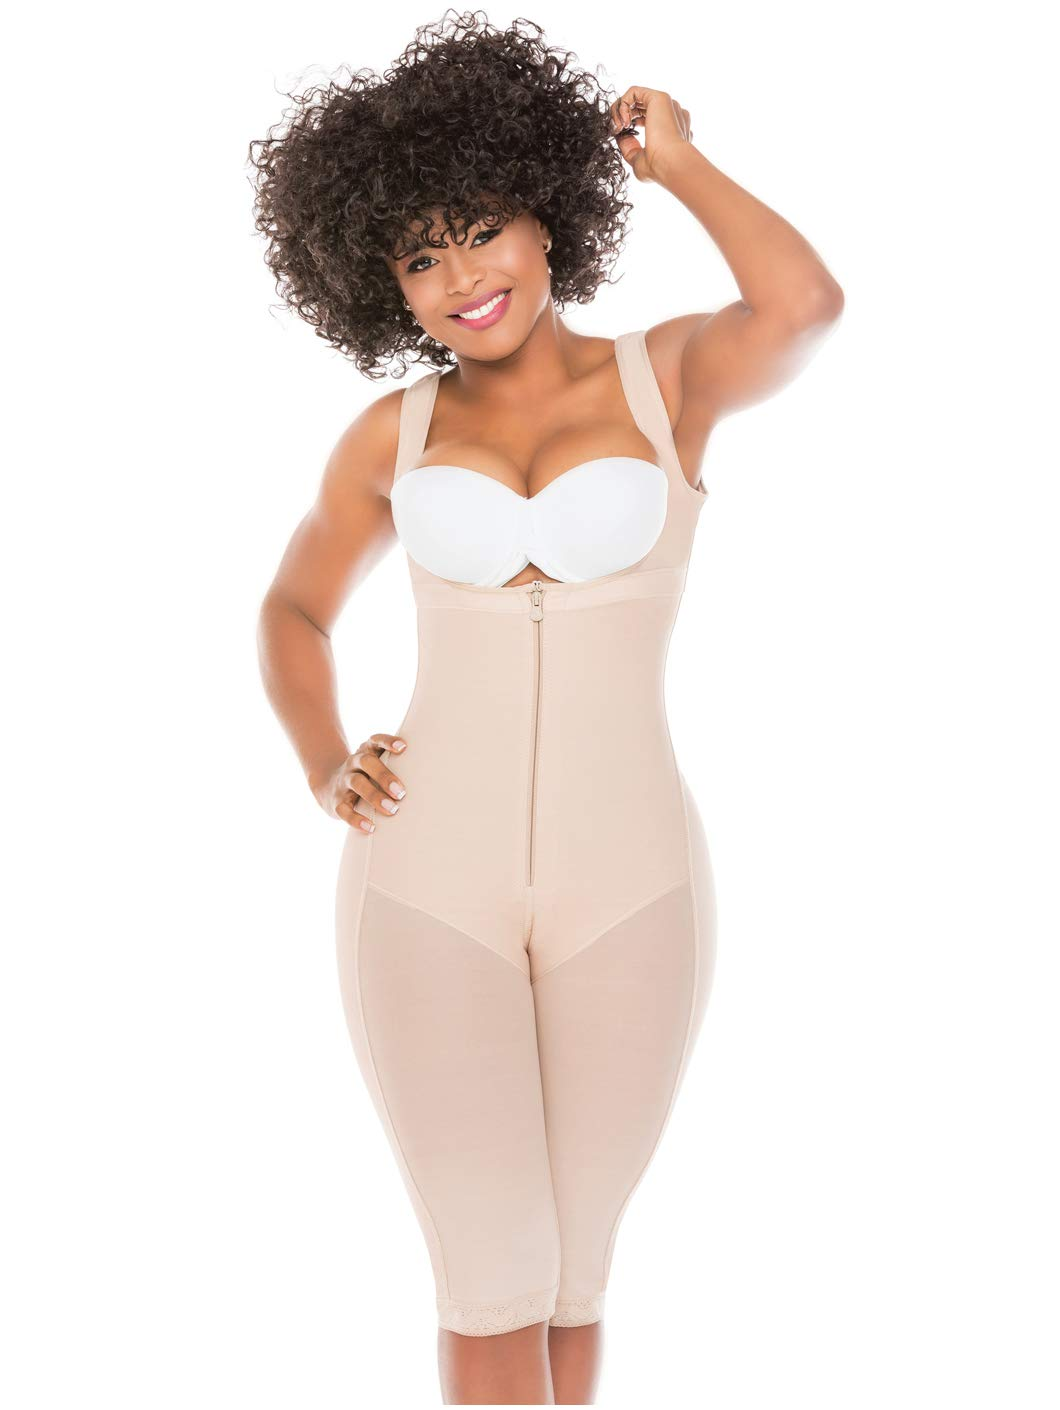 99489bc21 Salome 0517 Women Post Surgery Full Body Shaper with Zipper Shapewear Fajas  Colombianas Reductoras Moldeadoras Completas Post-operatorias Beige 2XL